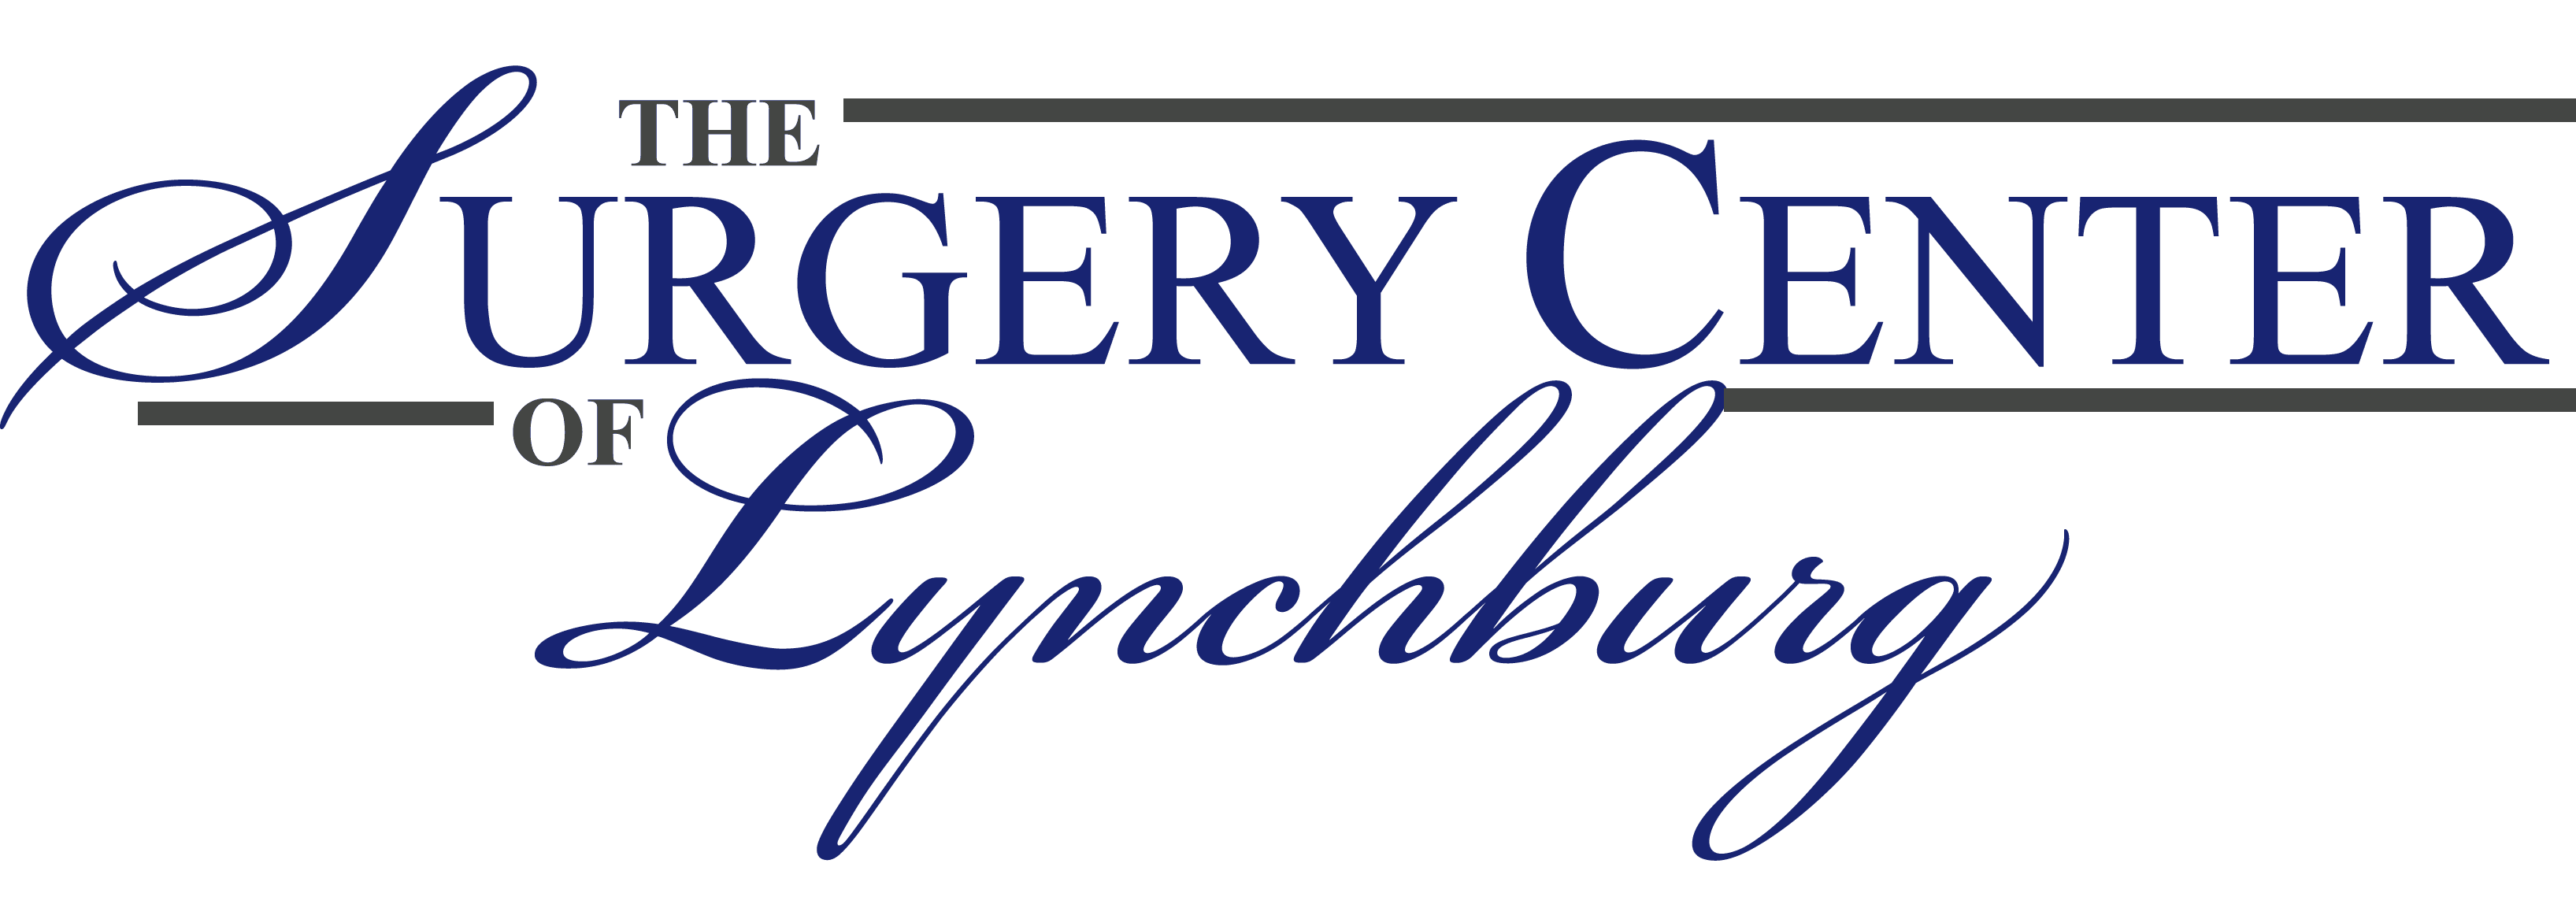 The Surgery Center of Lynchburg Logo